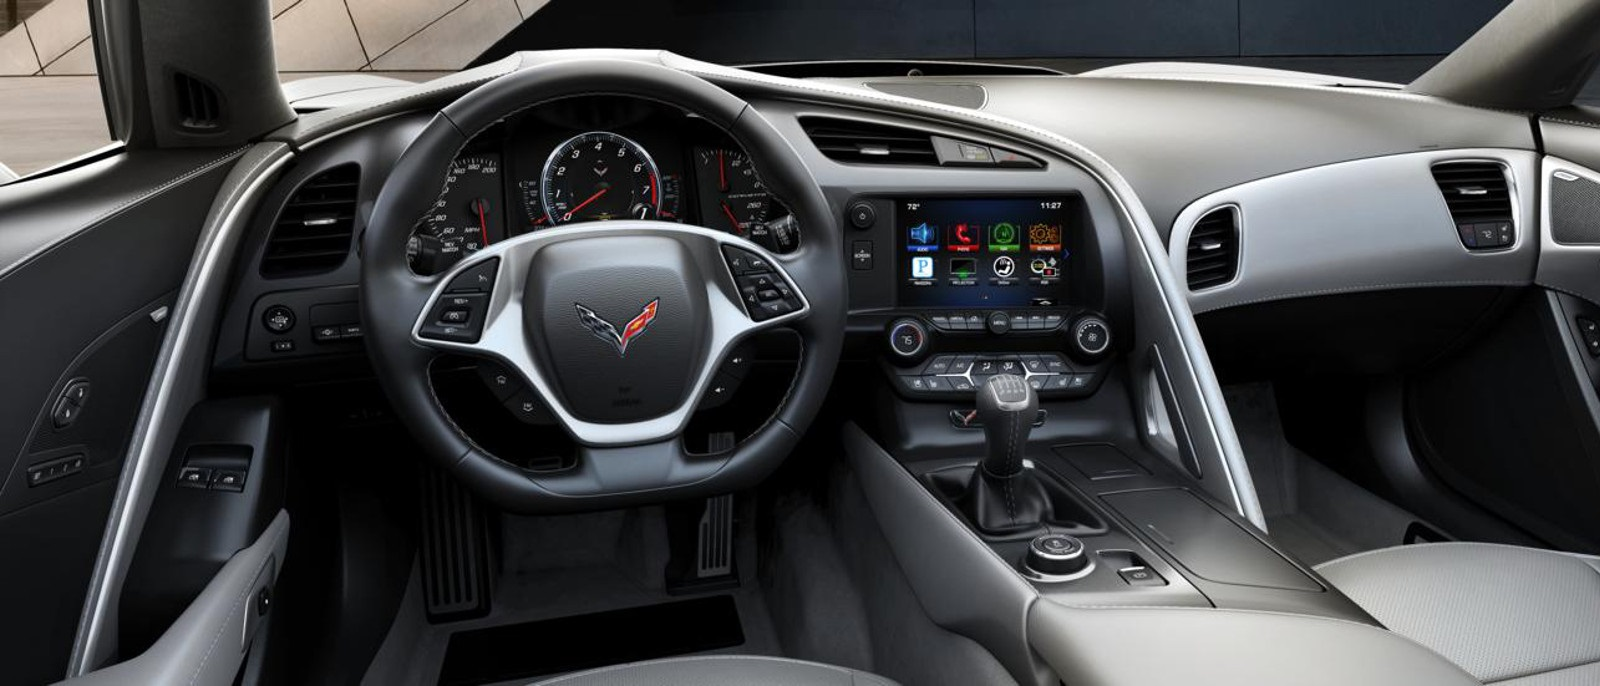 2016 Chevy Corvette Stingray Z51 3LT Coupe Interior